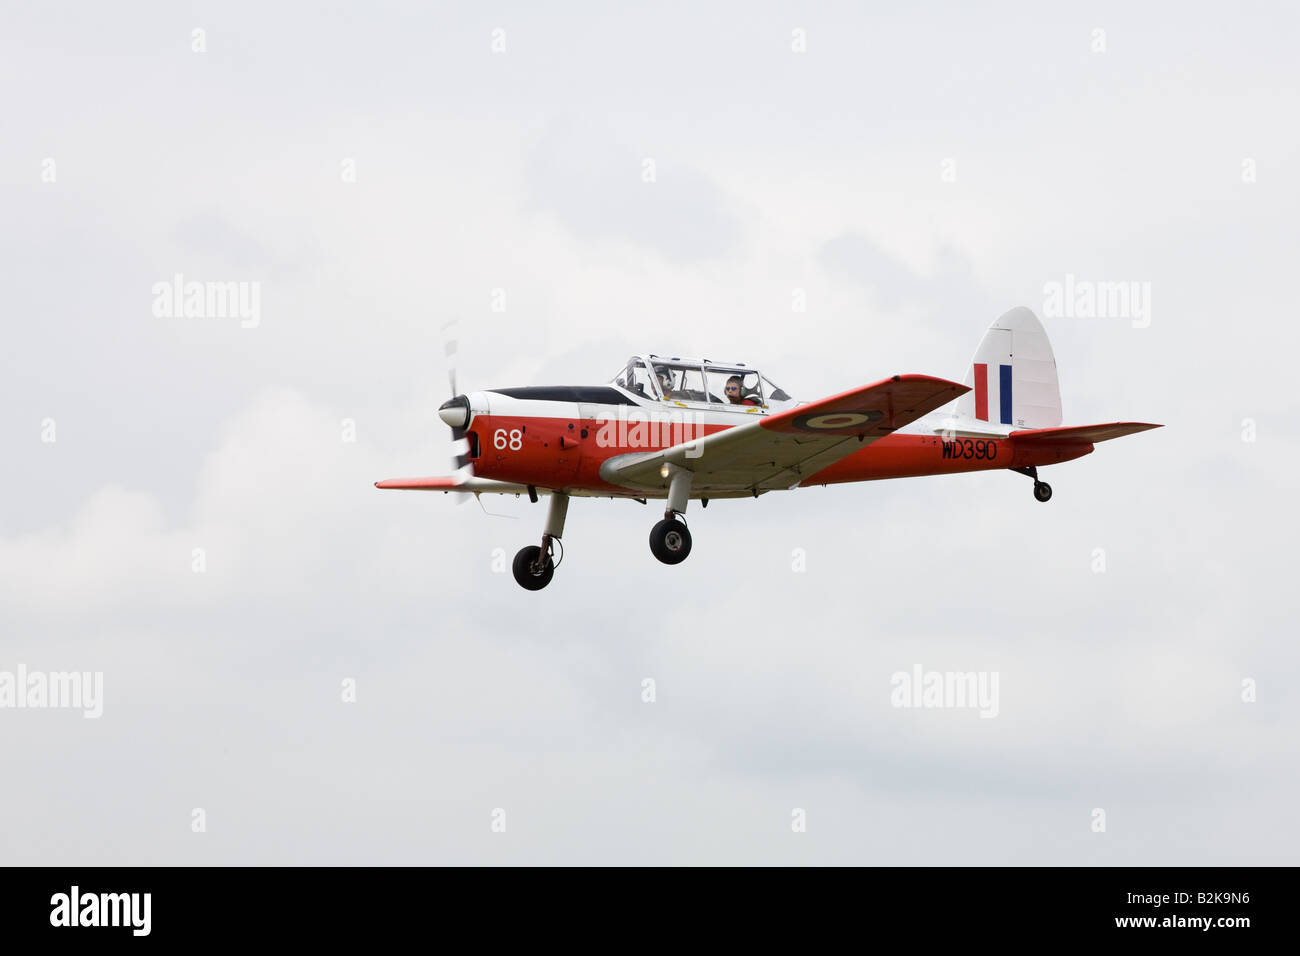 DeHavilland (Canada) DHC-1 Chipmunk 22 T10 WD390 68 G-BW*** in flight at Wickenby Airfield - Stock Image